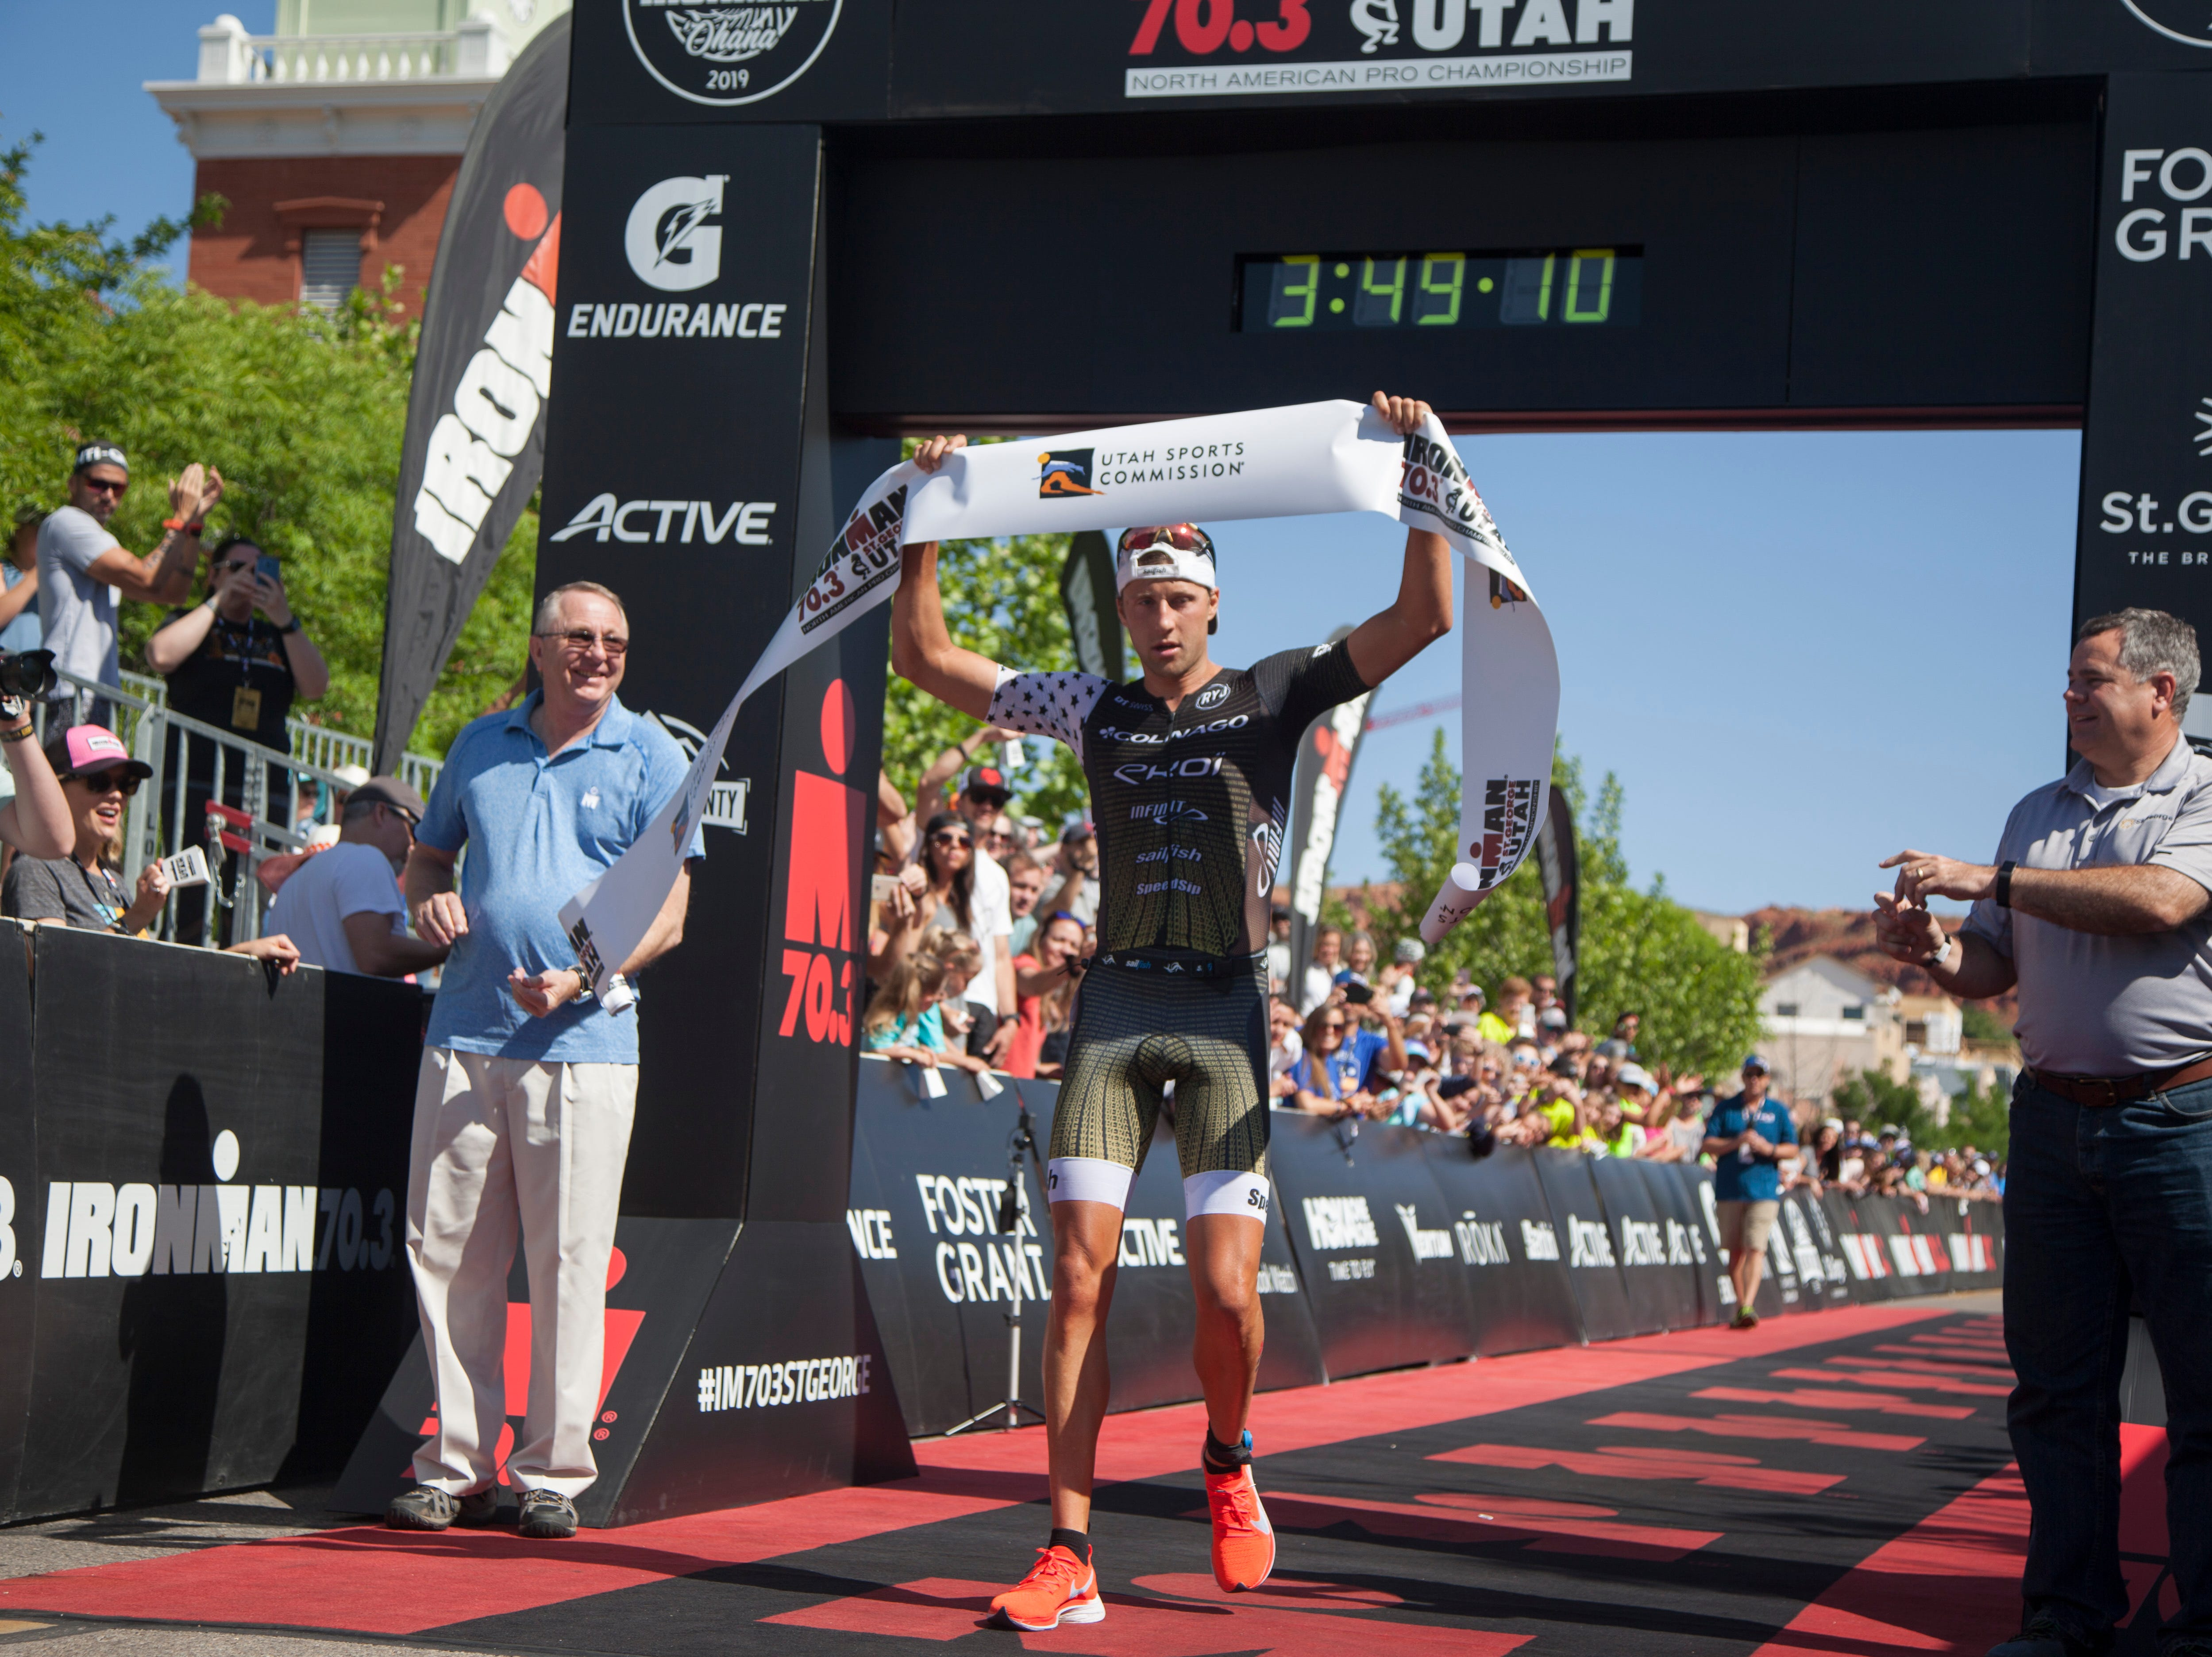 Rudy Vonberg crosses the finish line of the St. George Ironman Saturday, May 4, 2019.